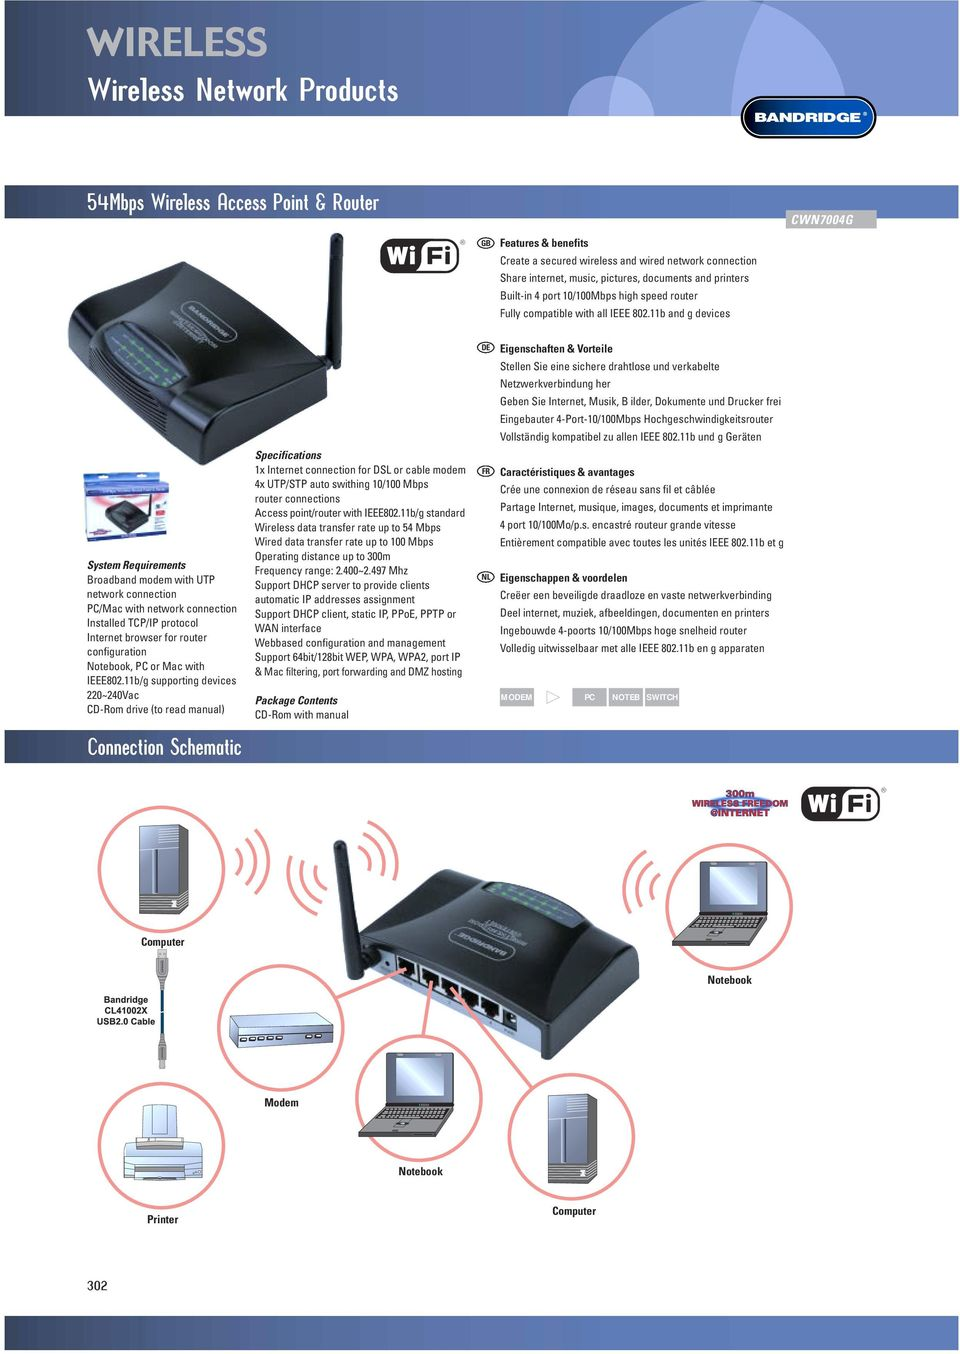 11b and g devices CWN7004G Broadband modem with UTP network connection PC/Mac with network connection Installed TCP/IP protocol Internet browser for router configuration Notebook, PC or Mac with